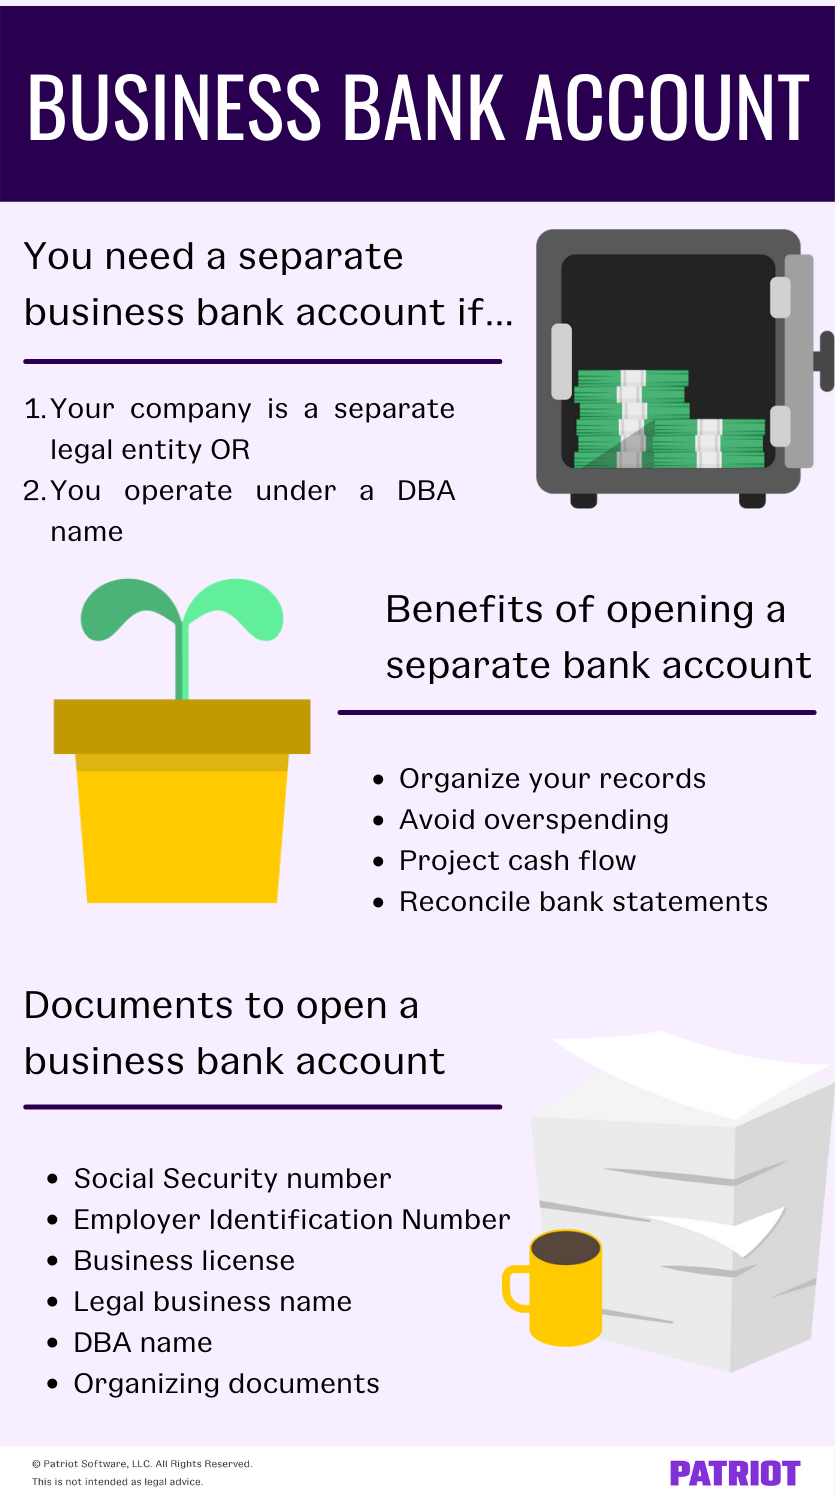 Infographic outlining reasons you need a separate business bank account, some benefits, and documents to open a business bank account